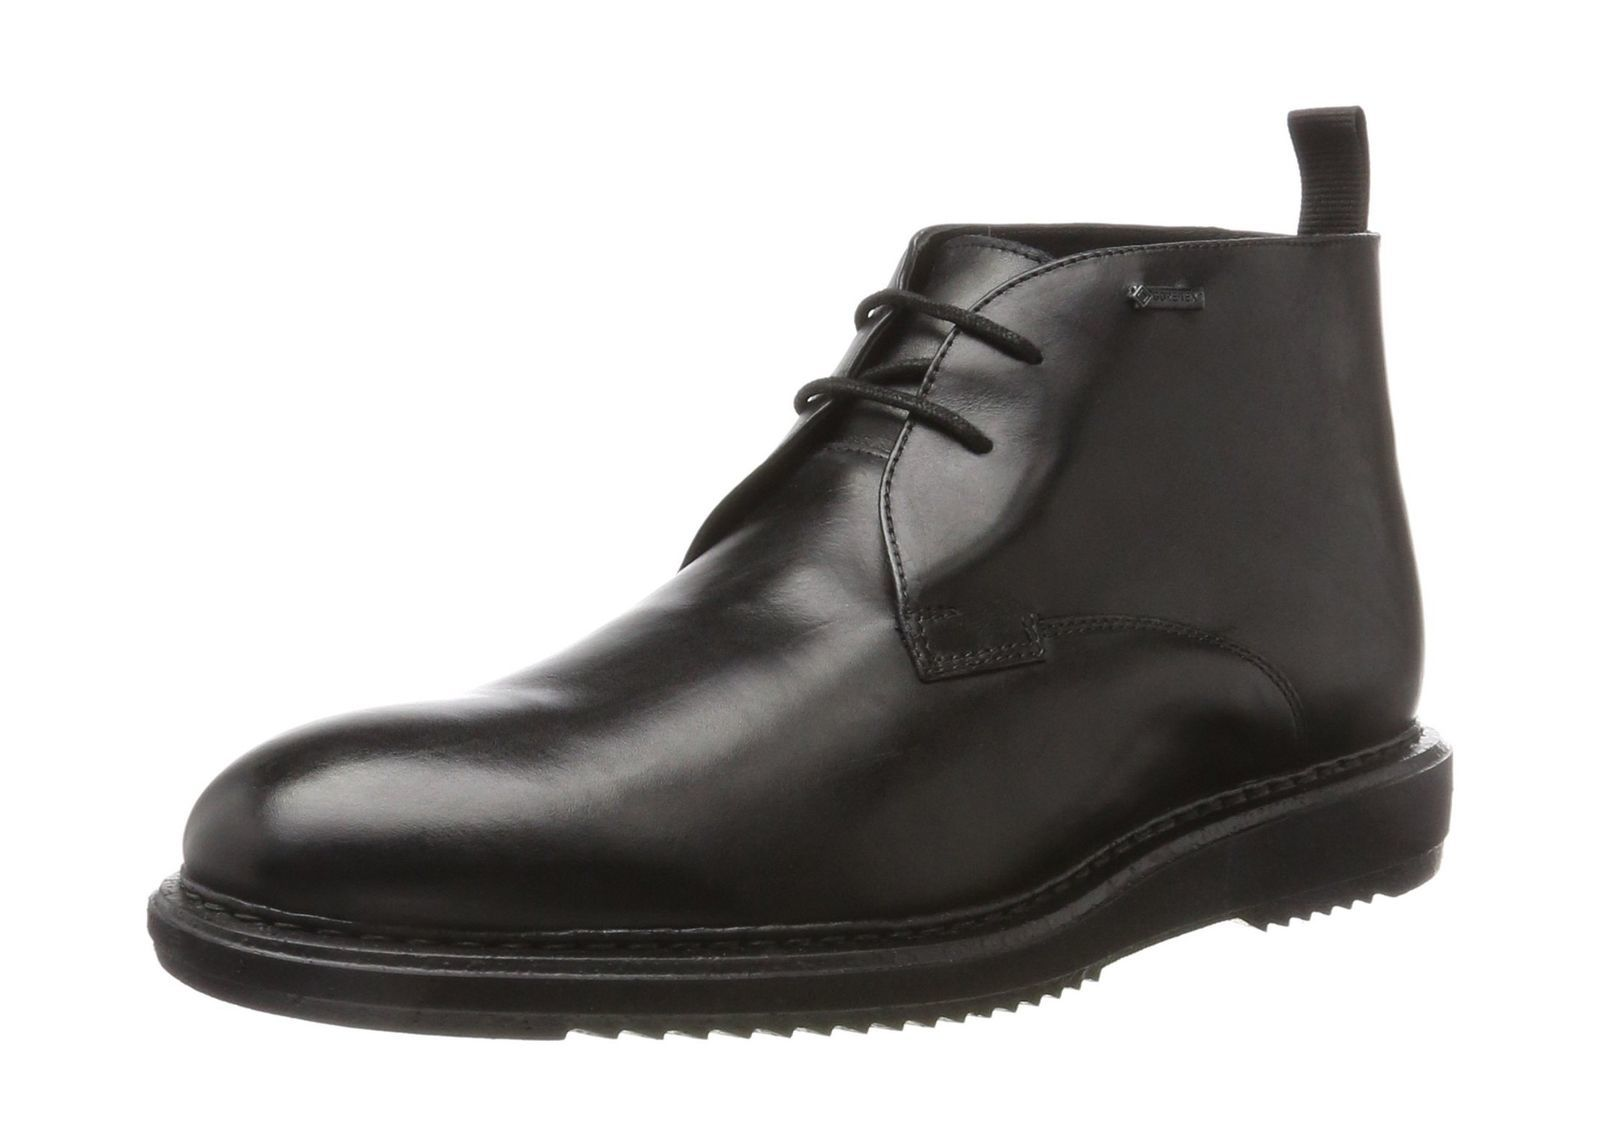 81d1202bfbc Clarks Mens Kenleymid GTX Classic Boots and 50 similar items